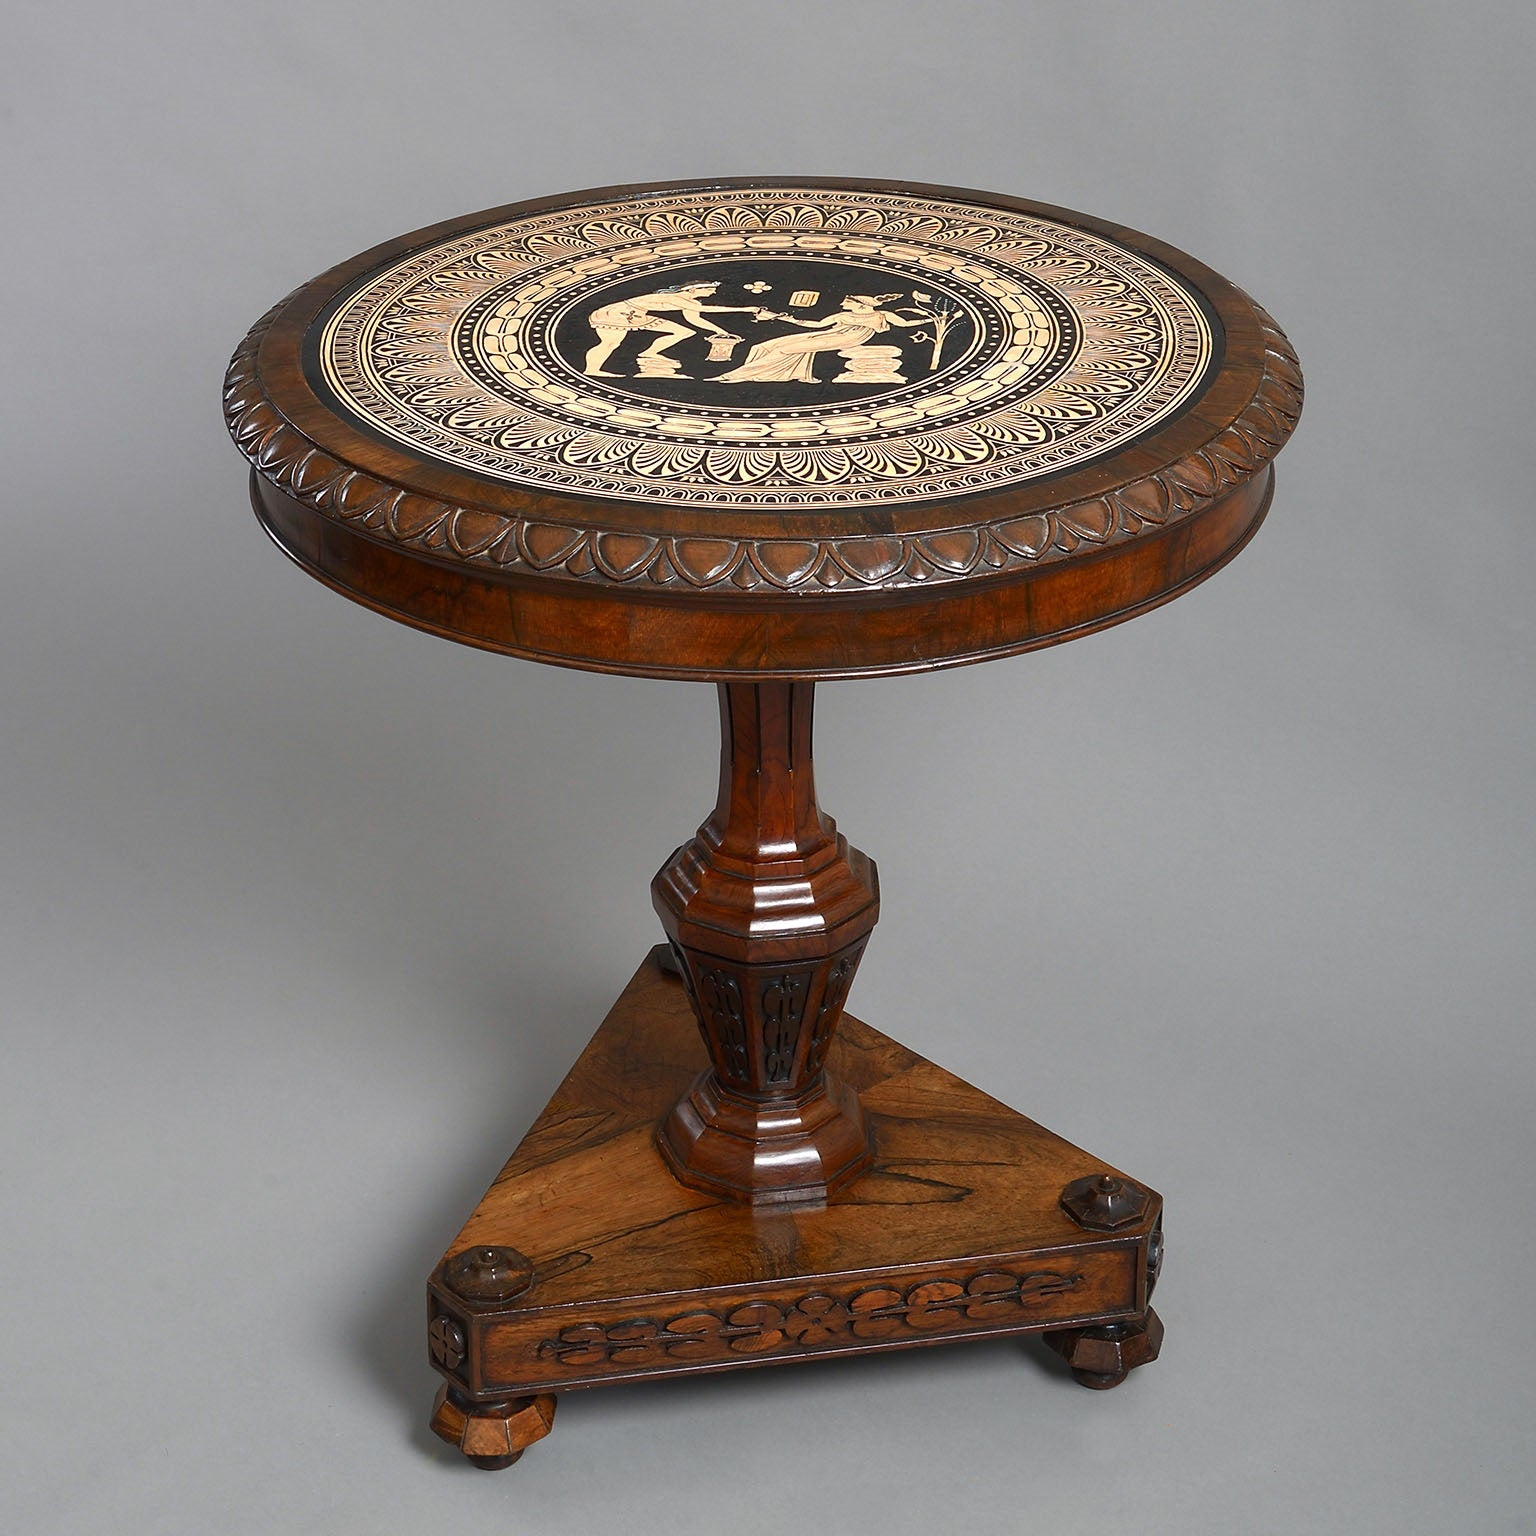 The Coghill Centre Table with a Neo-Classical Ceramic Top